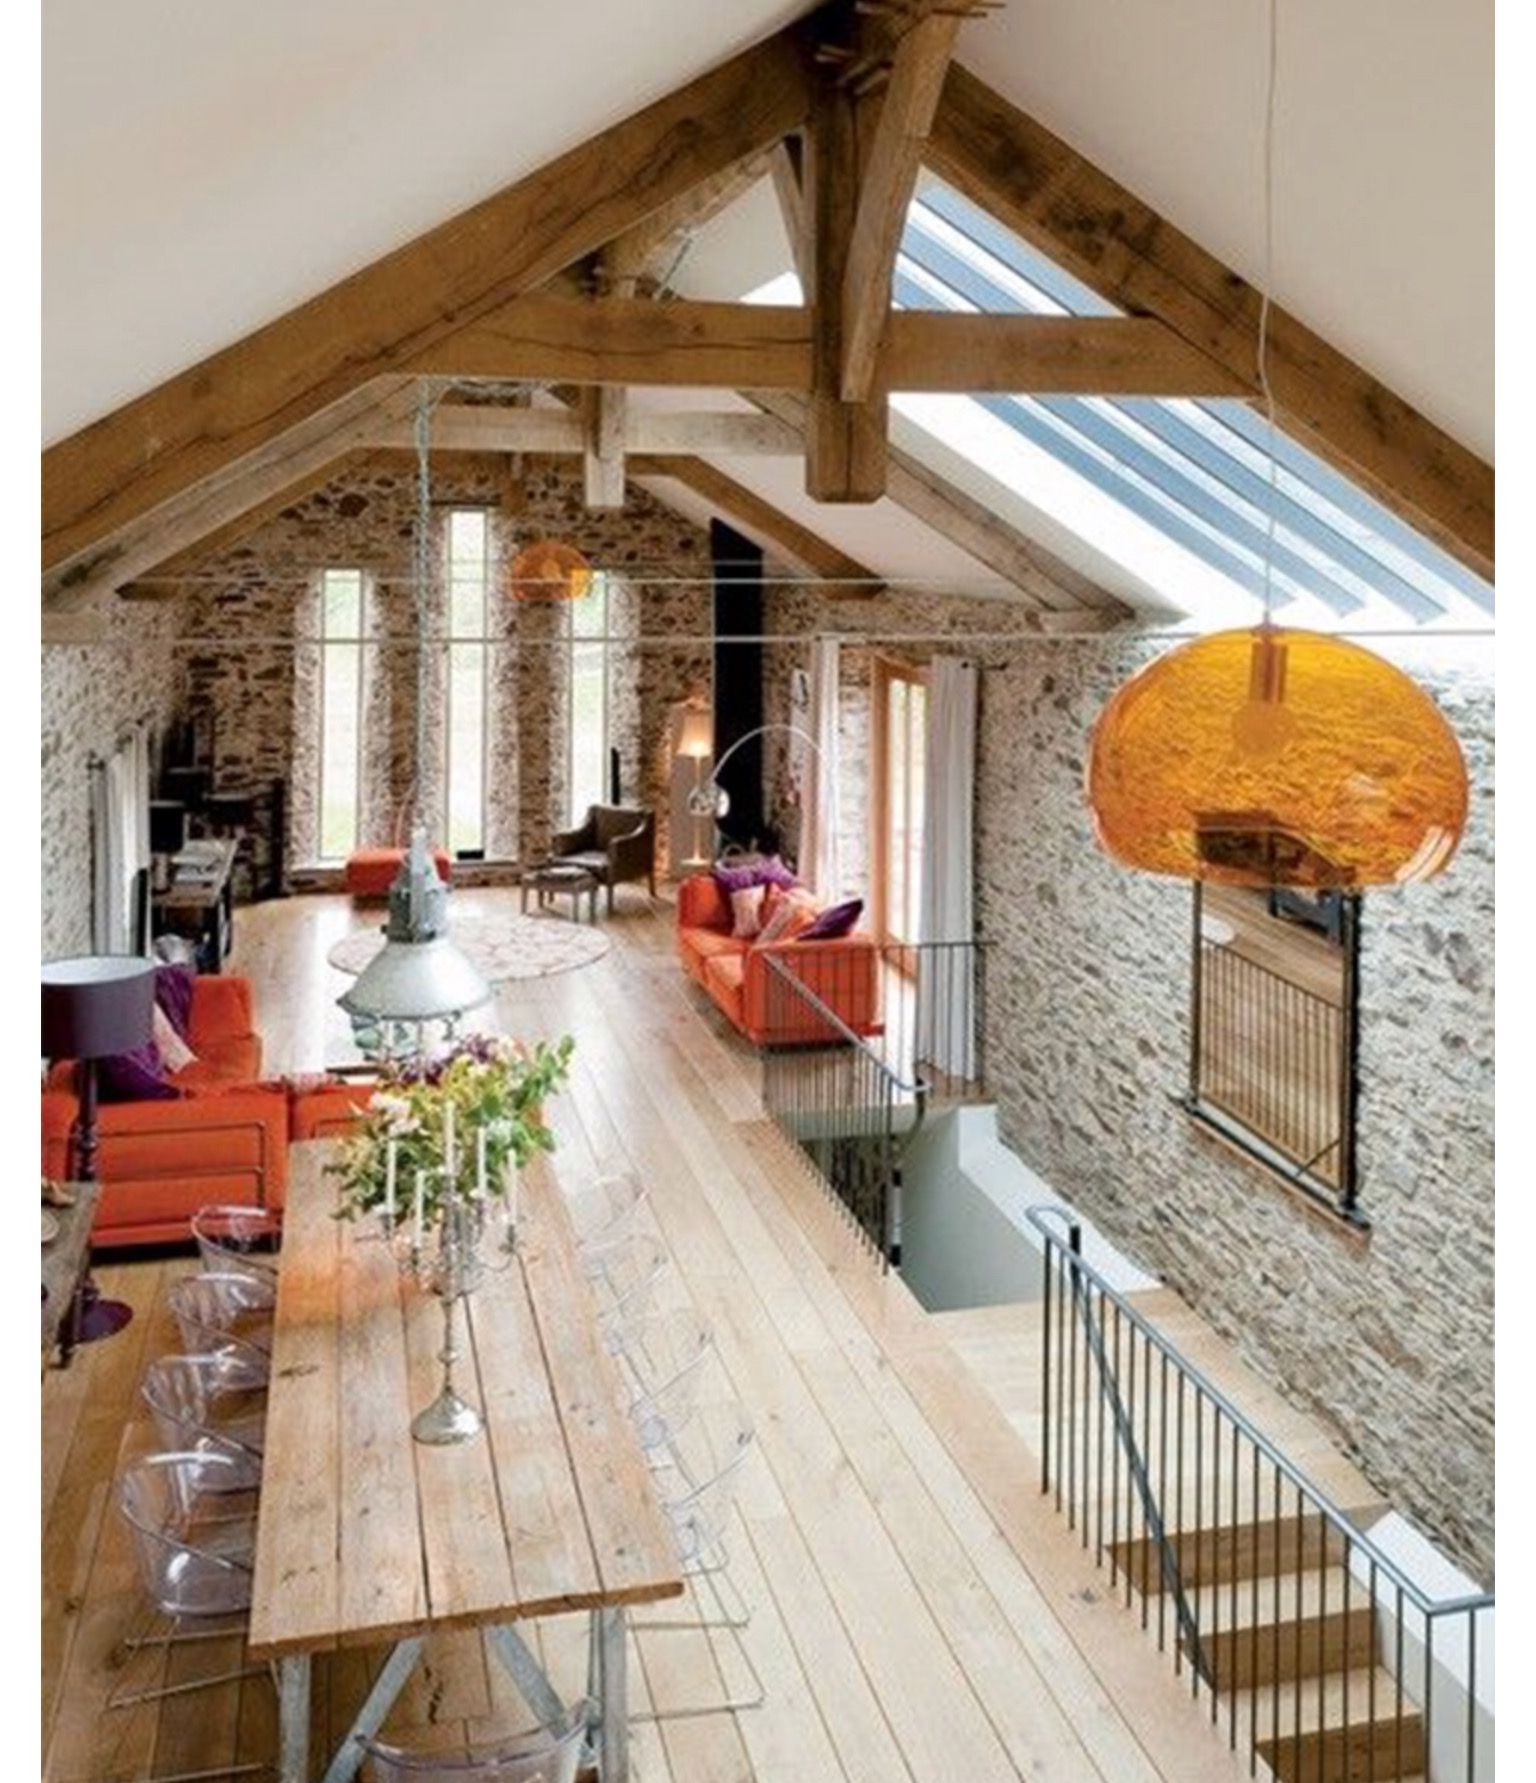 home design ideas 8 super smart ideas for decorating your attic properly - Small House With Attic